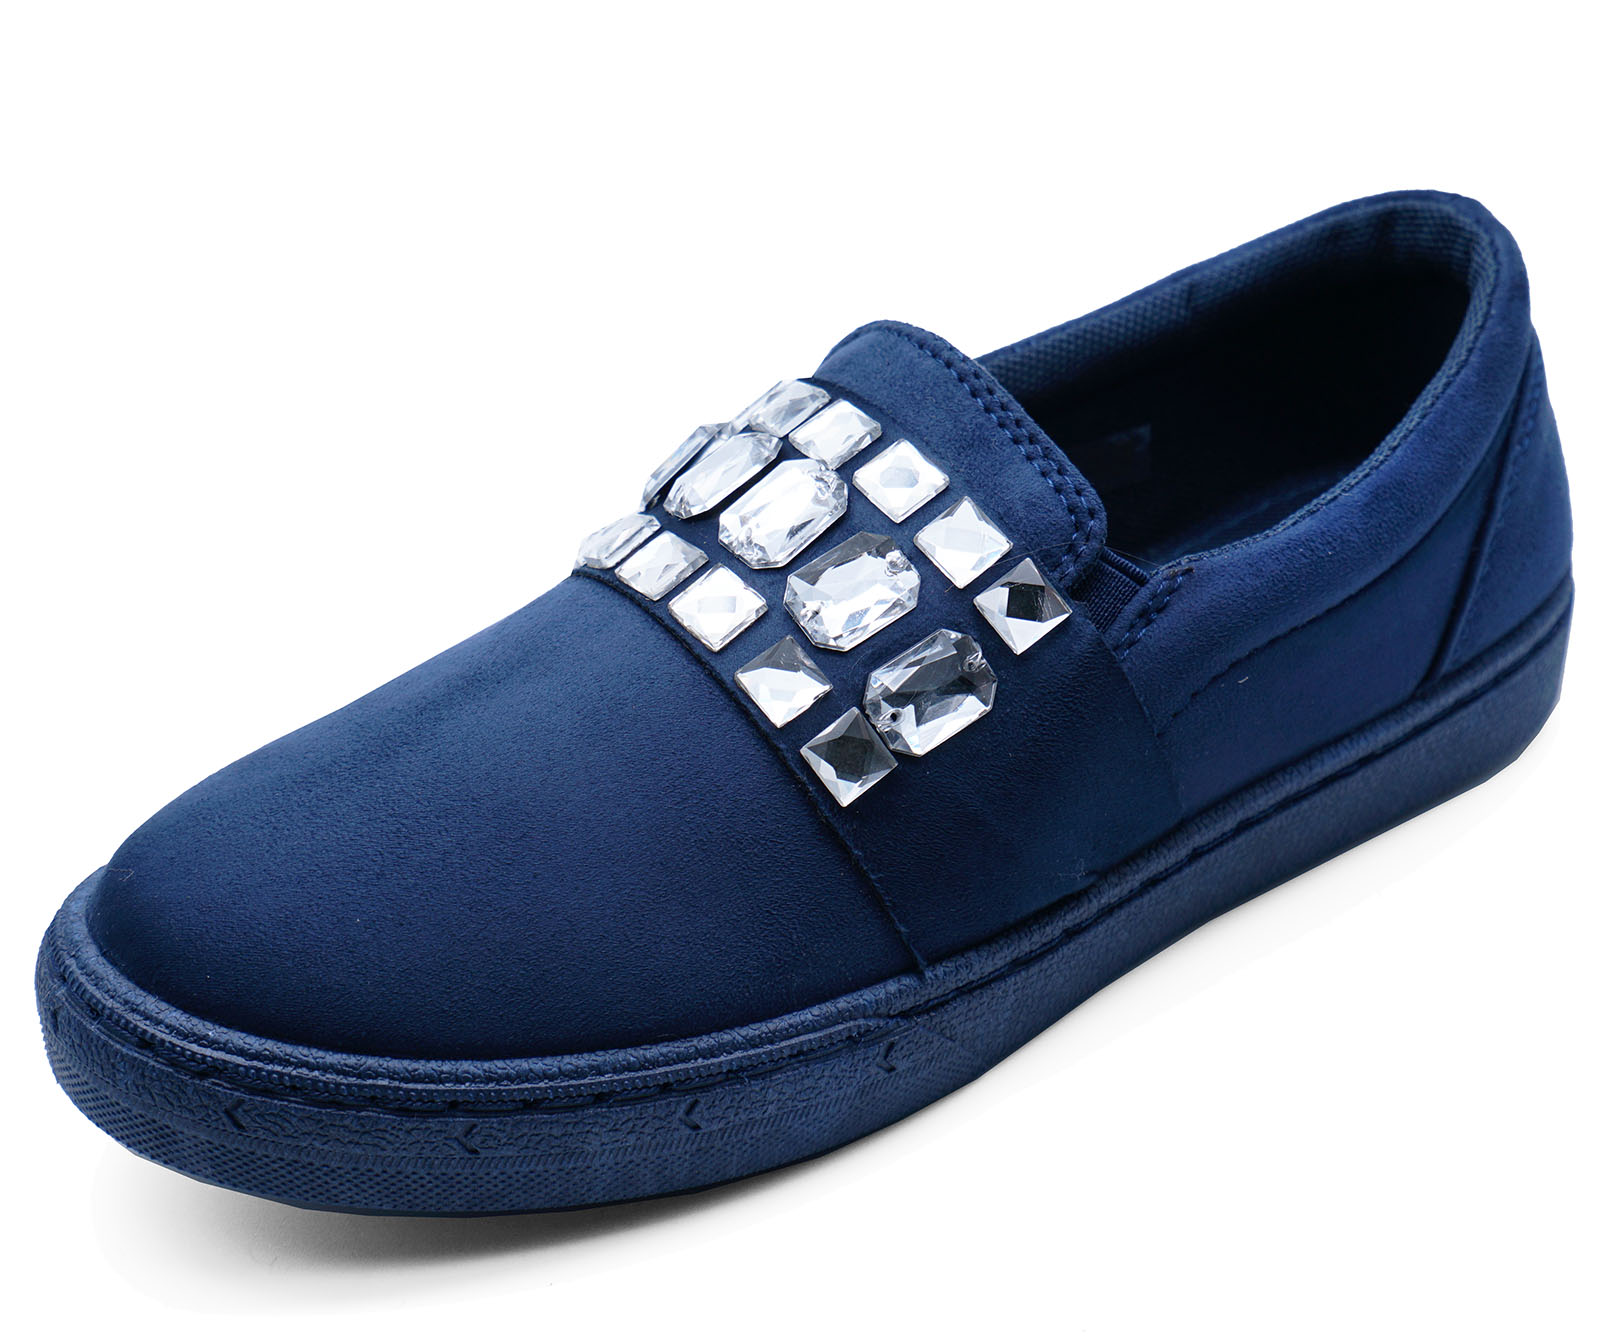 a10ede1ca2d Sentinel LADIES NAVY FLAT SLIP-ON DIAMANTE PUMPS CASUAL COMFY LOAFERS  TRAINERS SHOES 3-8